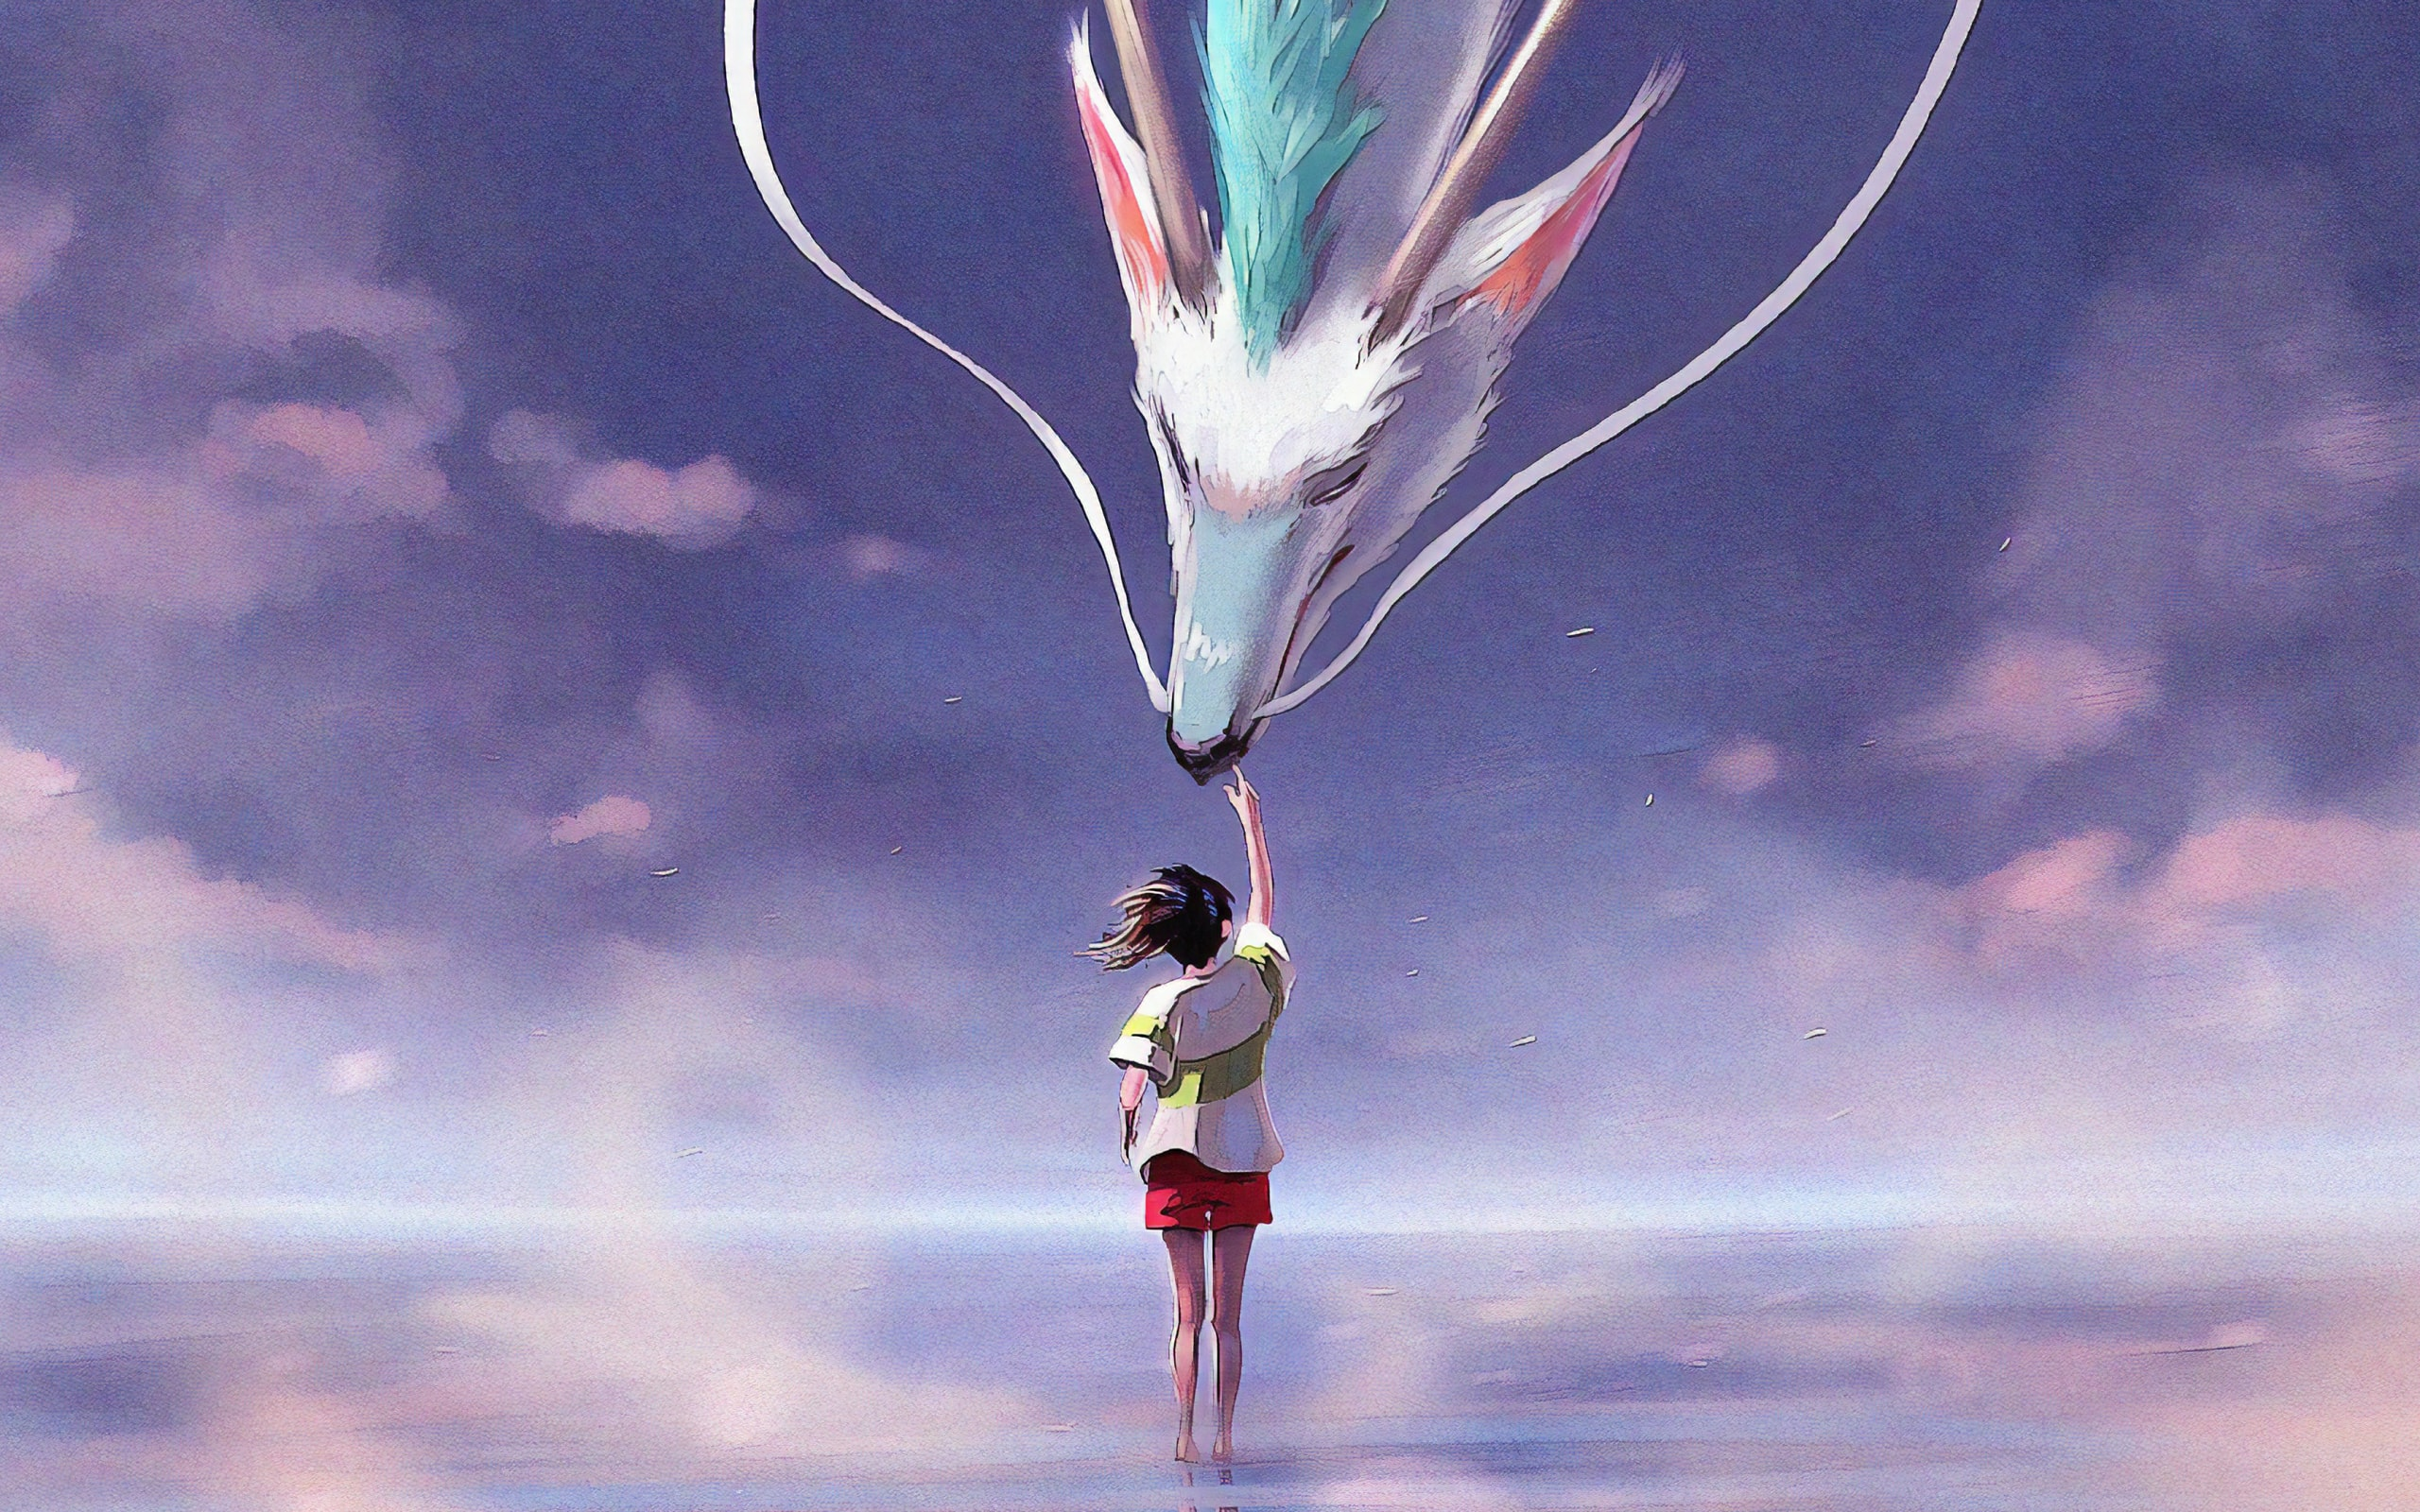 Wallpaper Of Dragon Girl Spirited Away Art Movie Spirited Away Wallpaper 1080p 2560x1600 Wallpaper Teahub Io